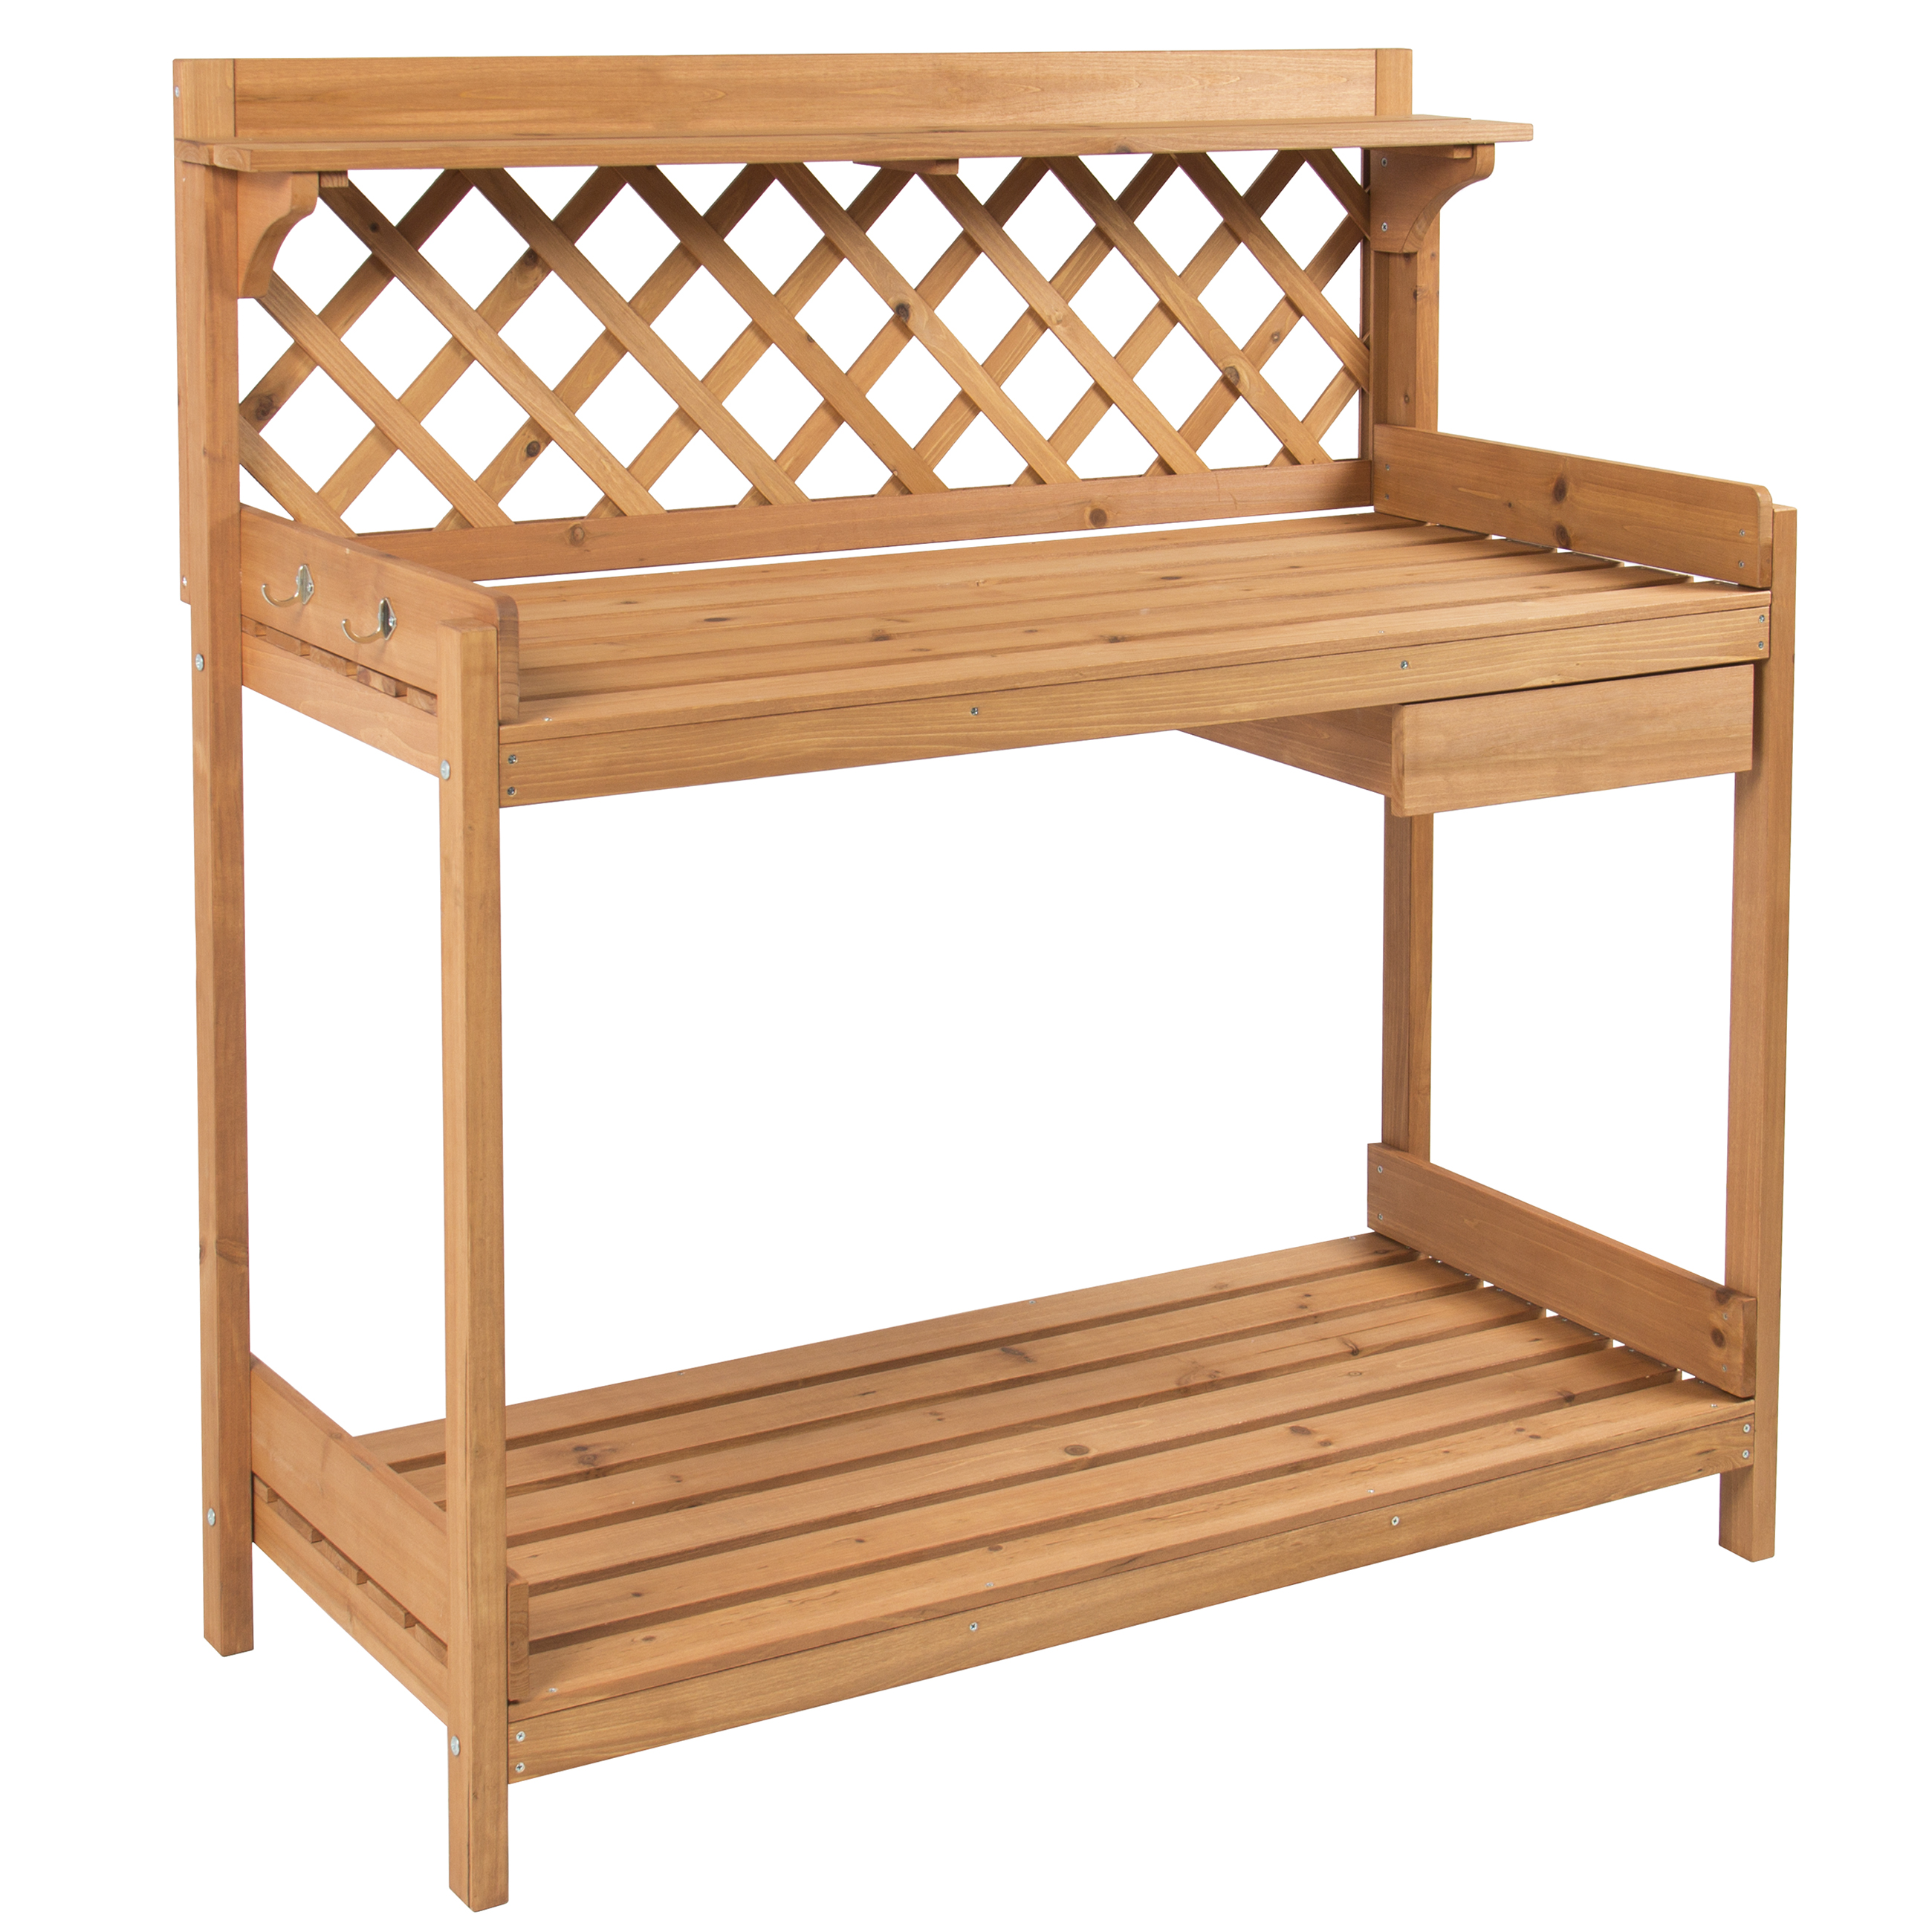 best choice products potting bench outdoor garden work bench station planting solid wood construction walmartcom - Garden Work Bench